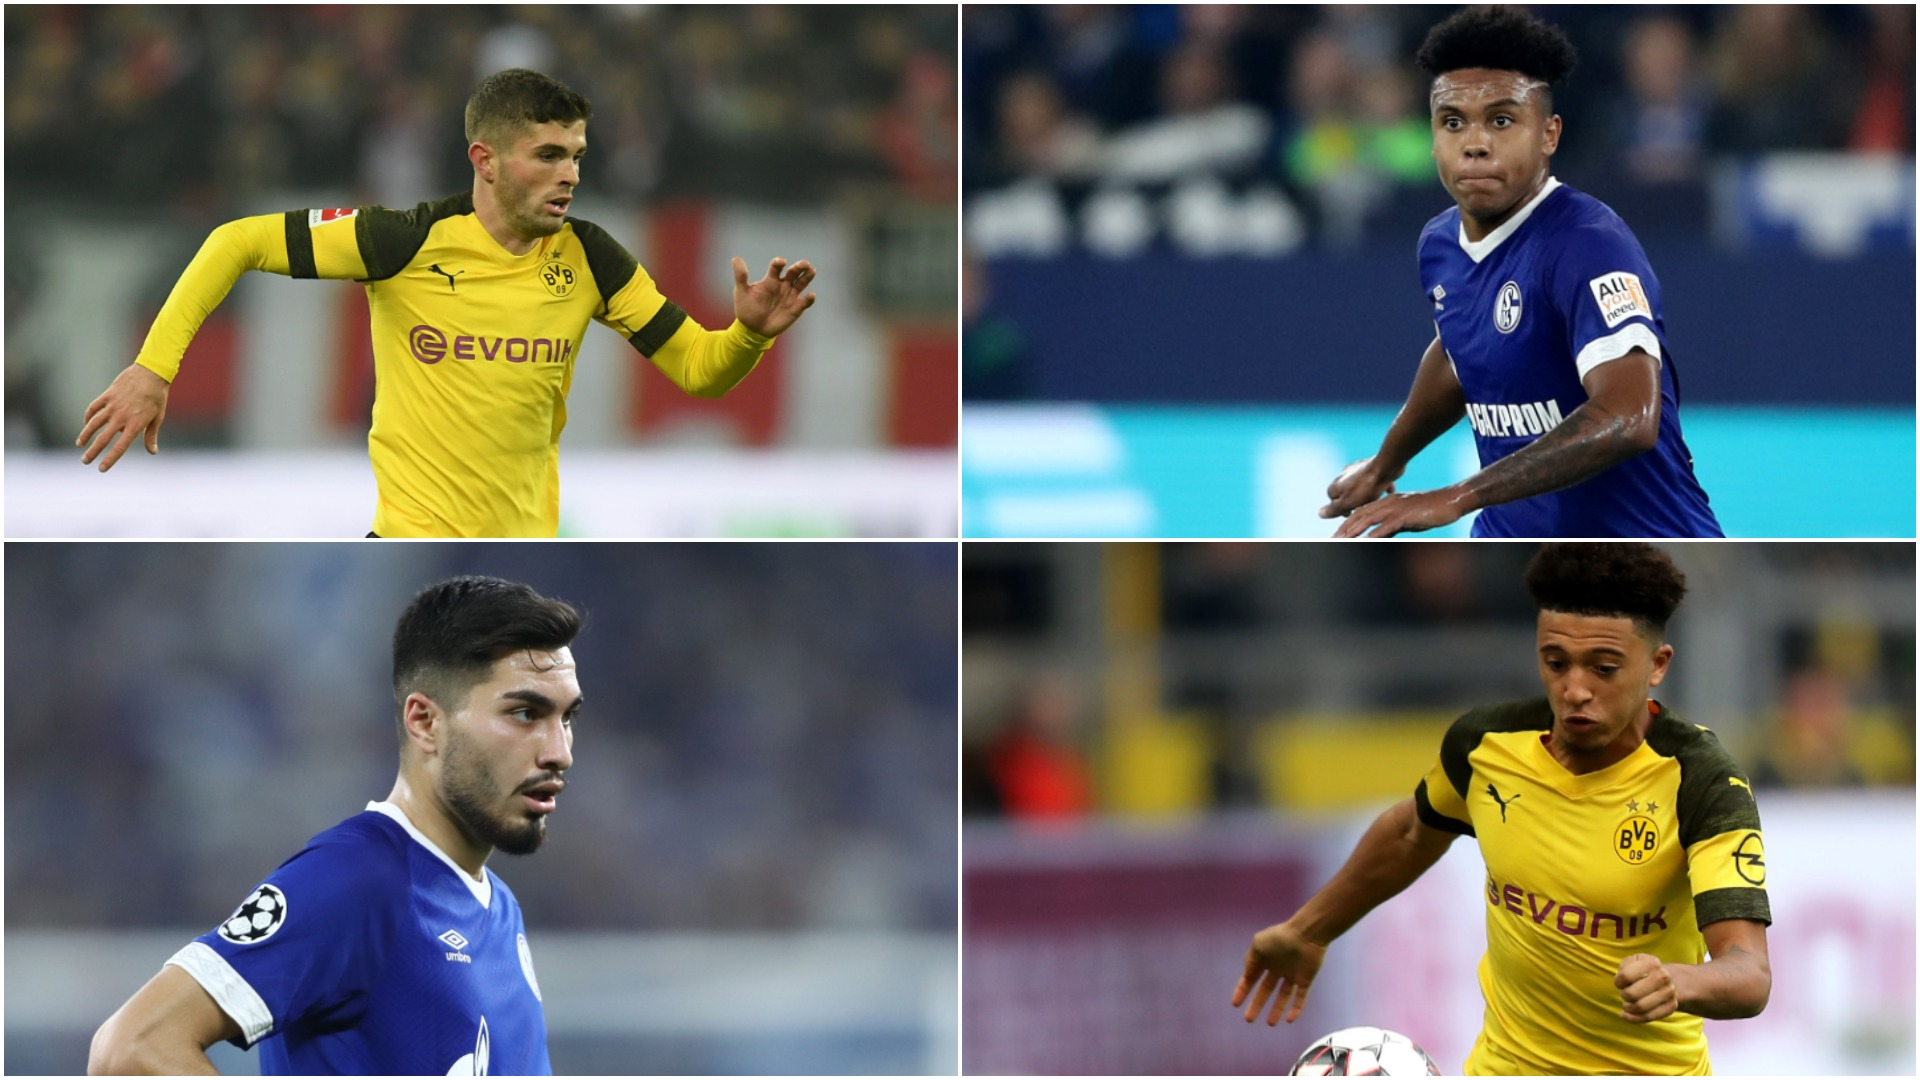 Schalke v Borussia Dortmund: Sancho, Harit, Pulisic and the Revierderby's other young stars